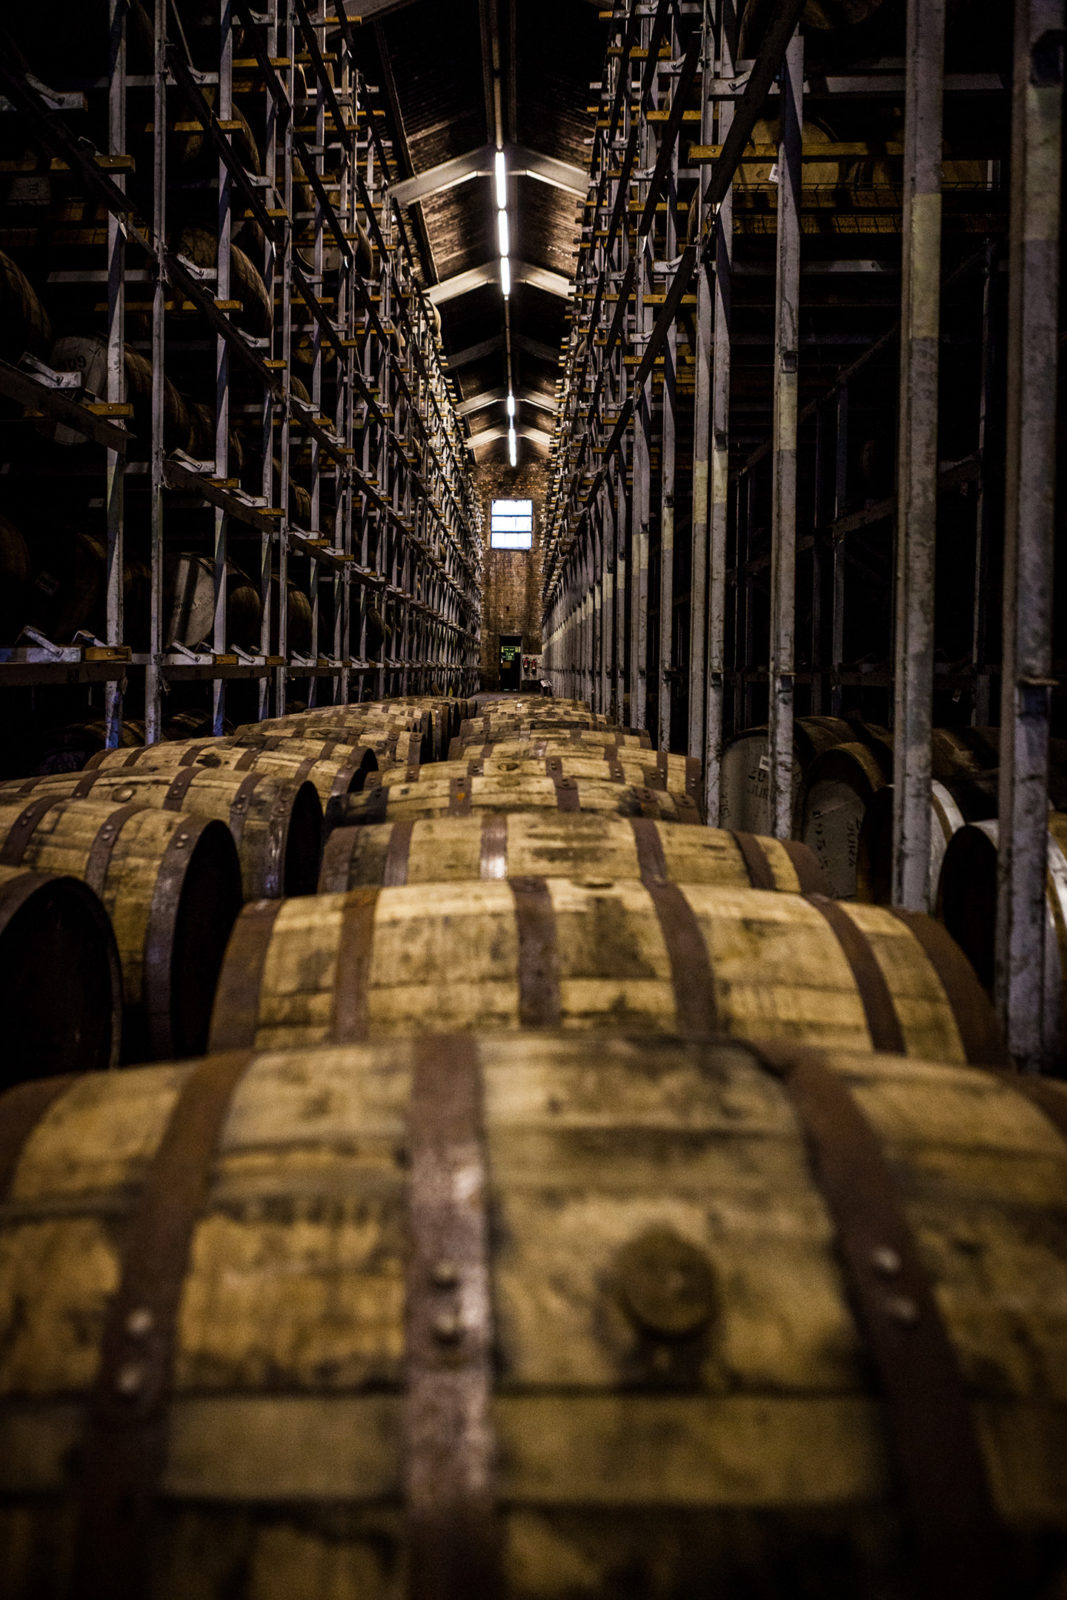 Whisky Casks Stored At Distillery Warehouse in Scotland